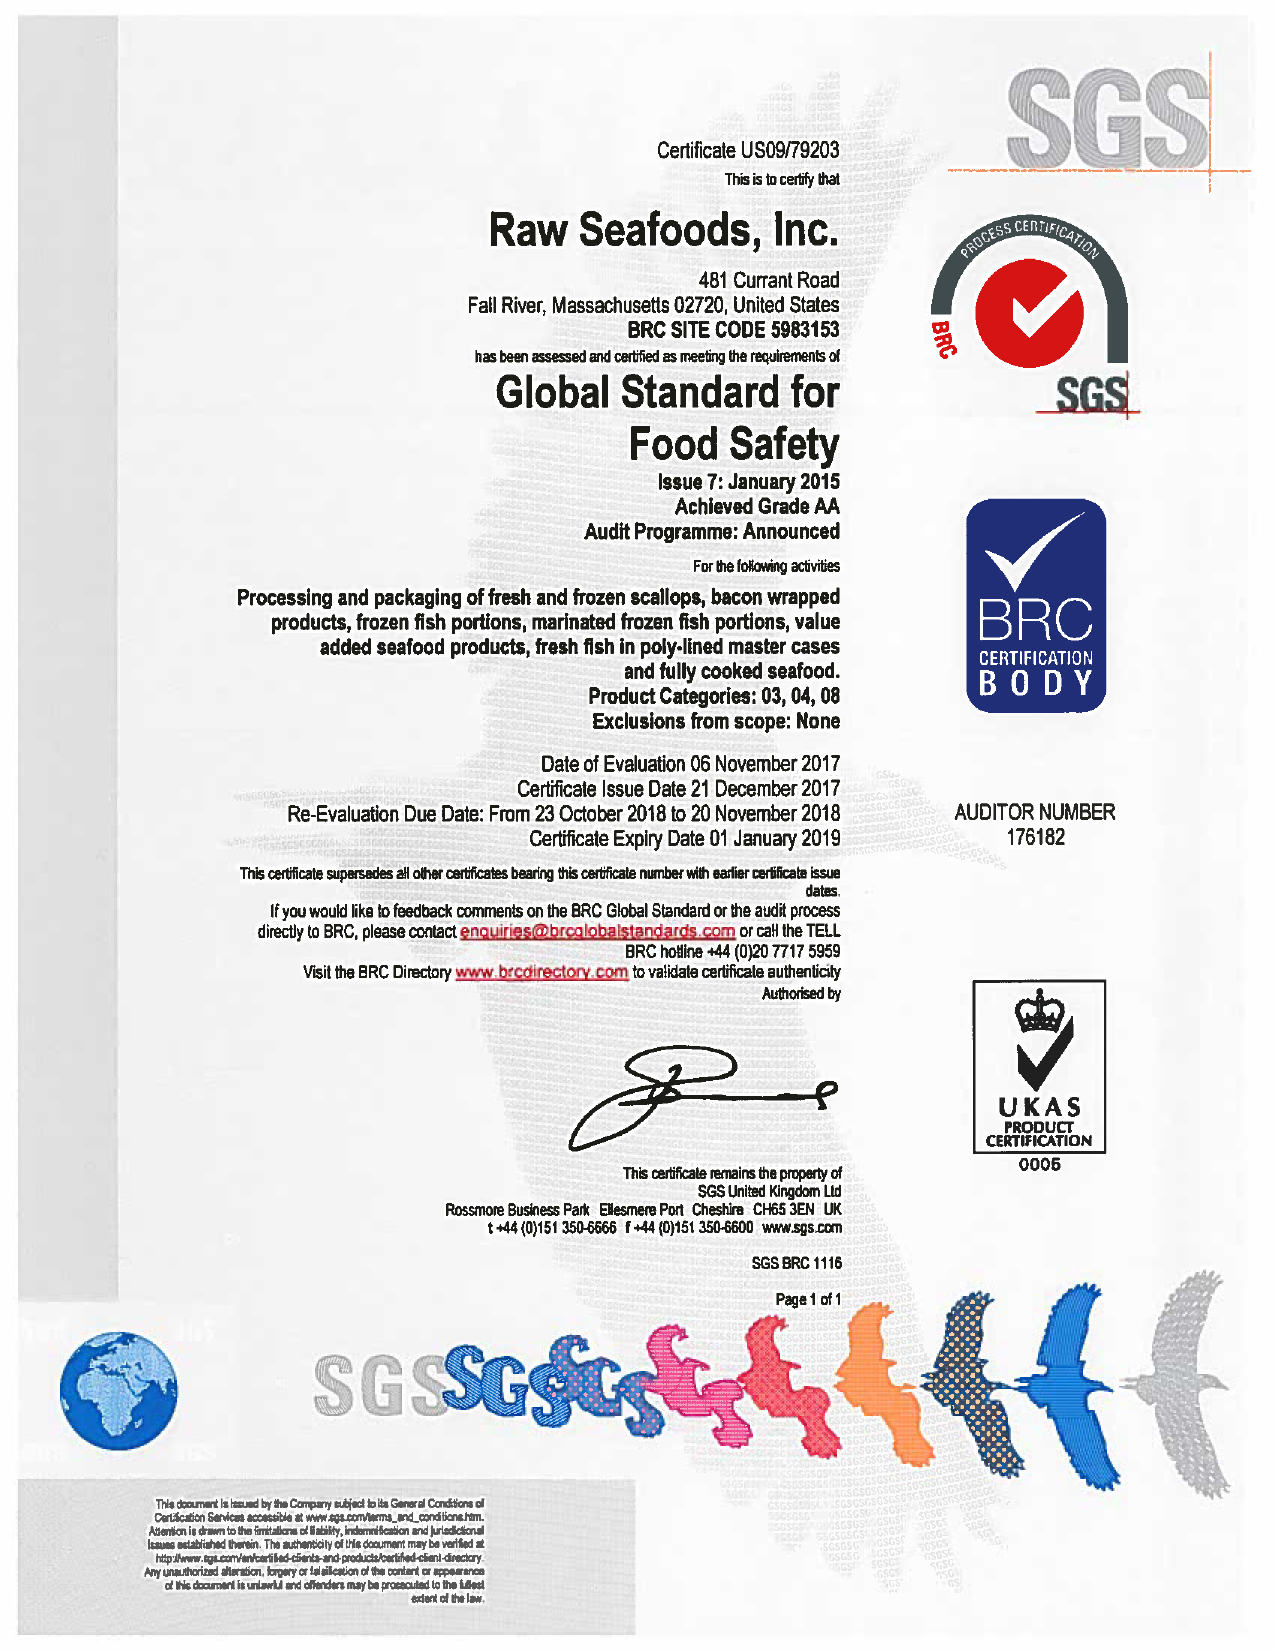 Food Safety Certifications Raw Seafoods Inc Holds Grade A Information